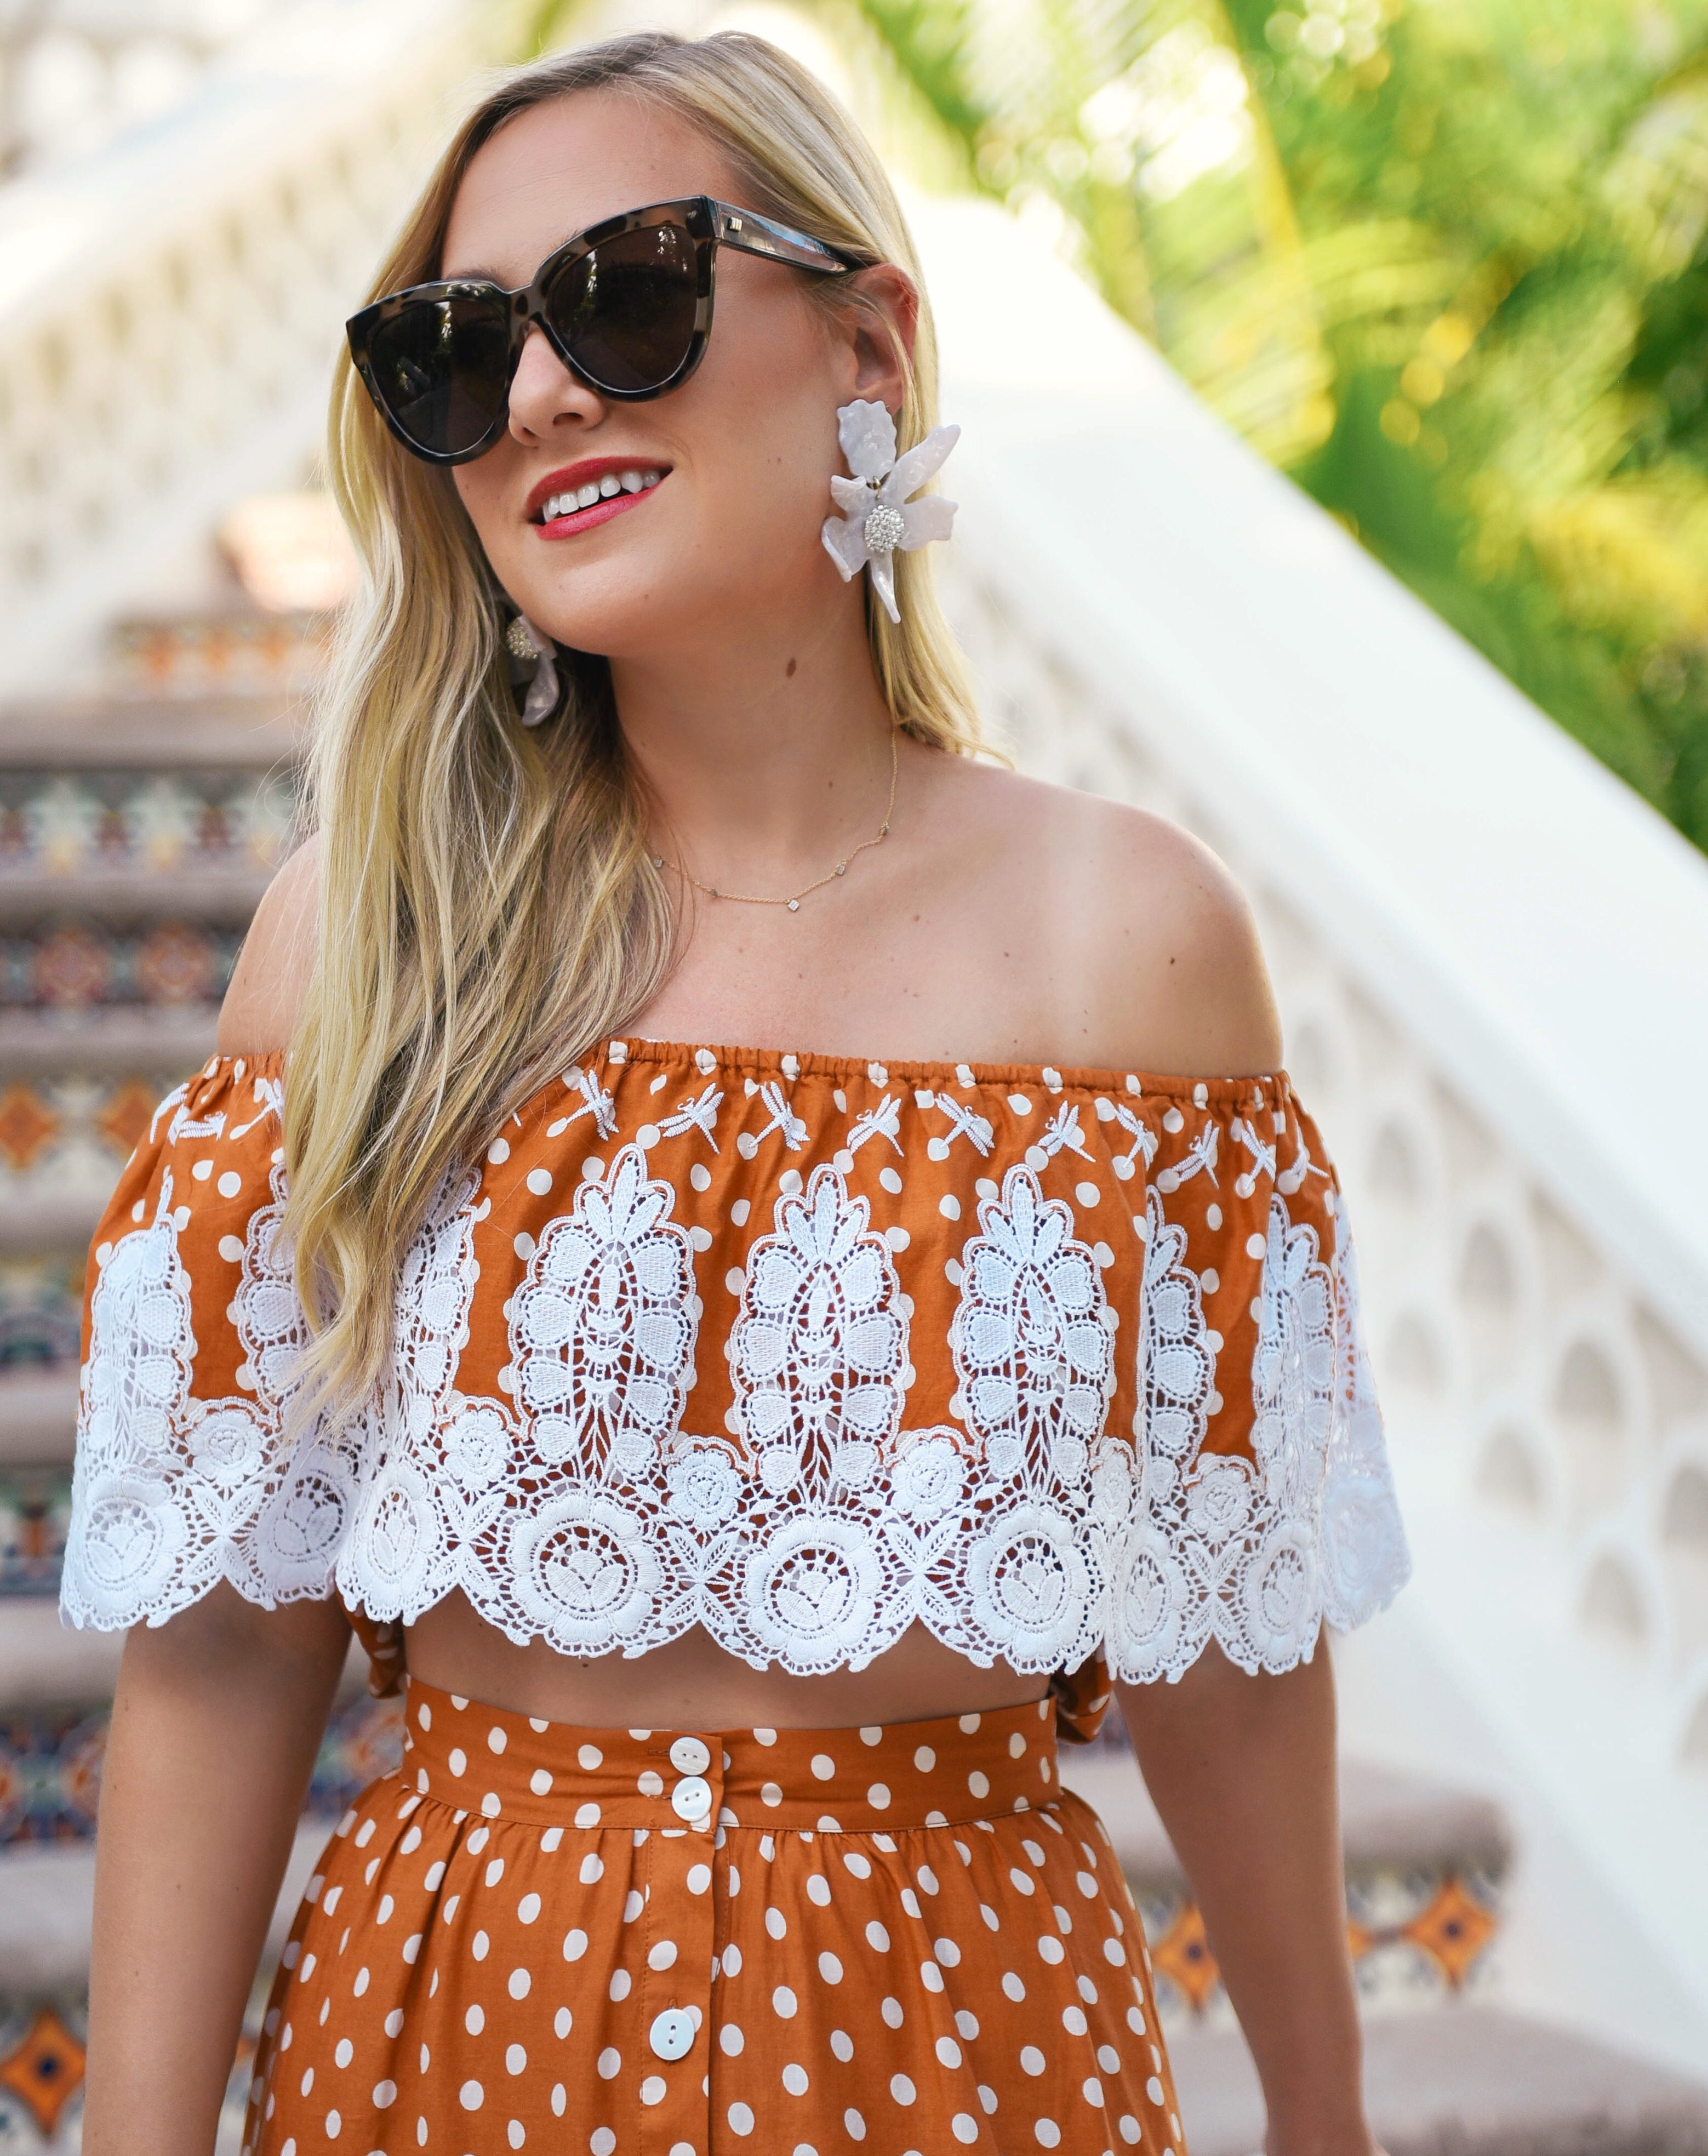 Miguelina-Shopbop-Matching-Set-Lo-Murphy-Miguelina-Orange-Set-Lace-Dress-travel-blogger